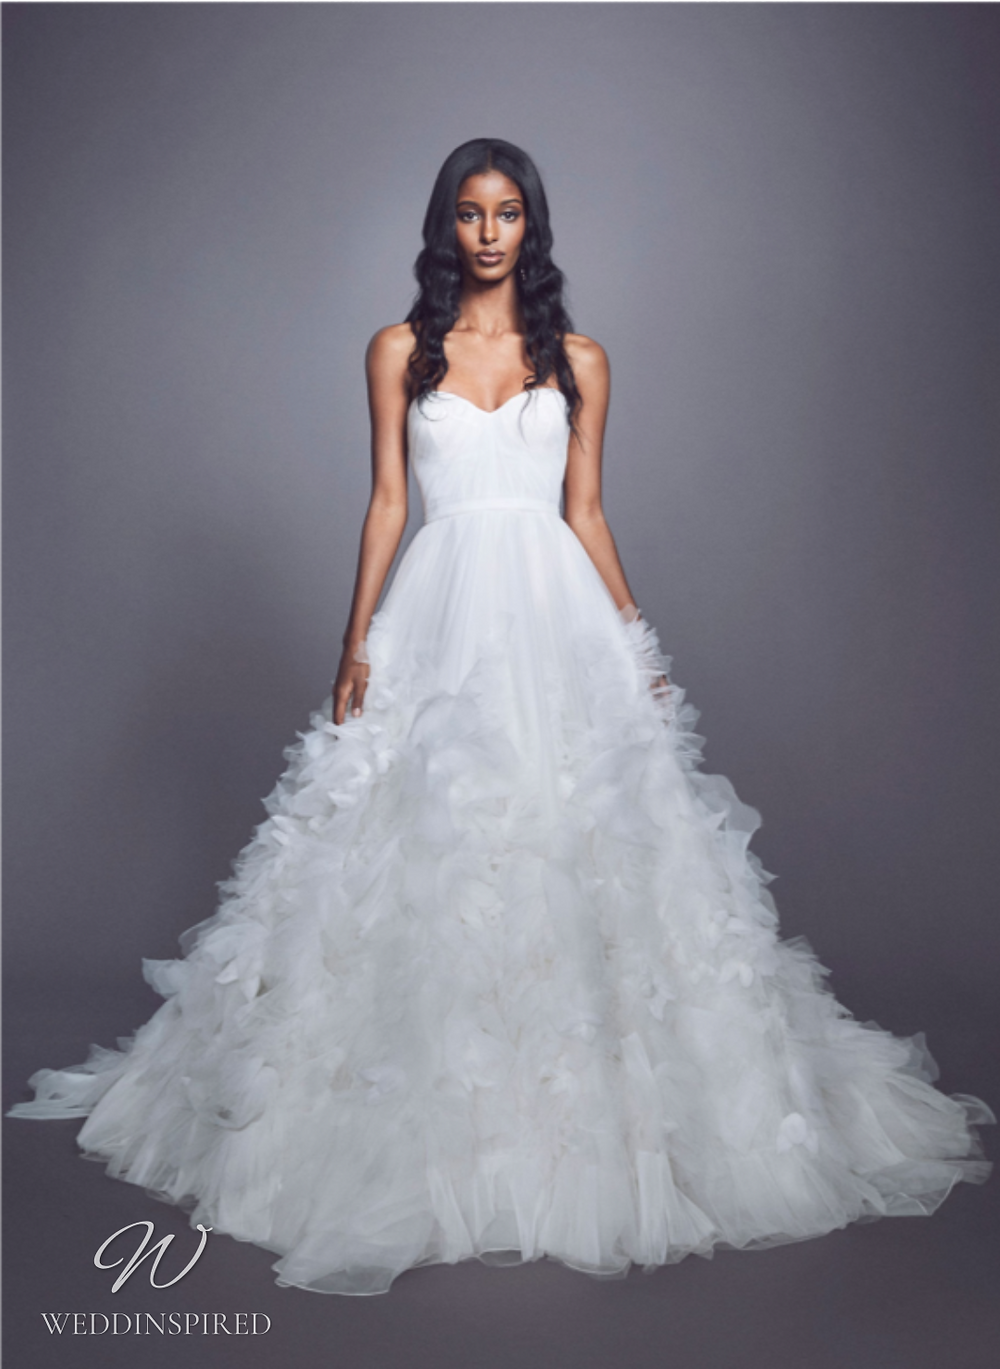 A Marchesa Fall 2021 strapless tulle ball gown wedding dress with a tulle ruffle skirt